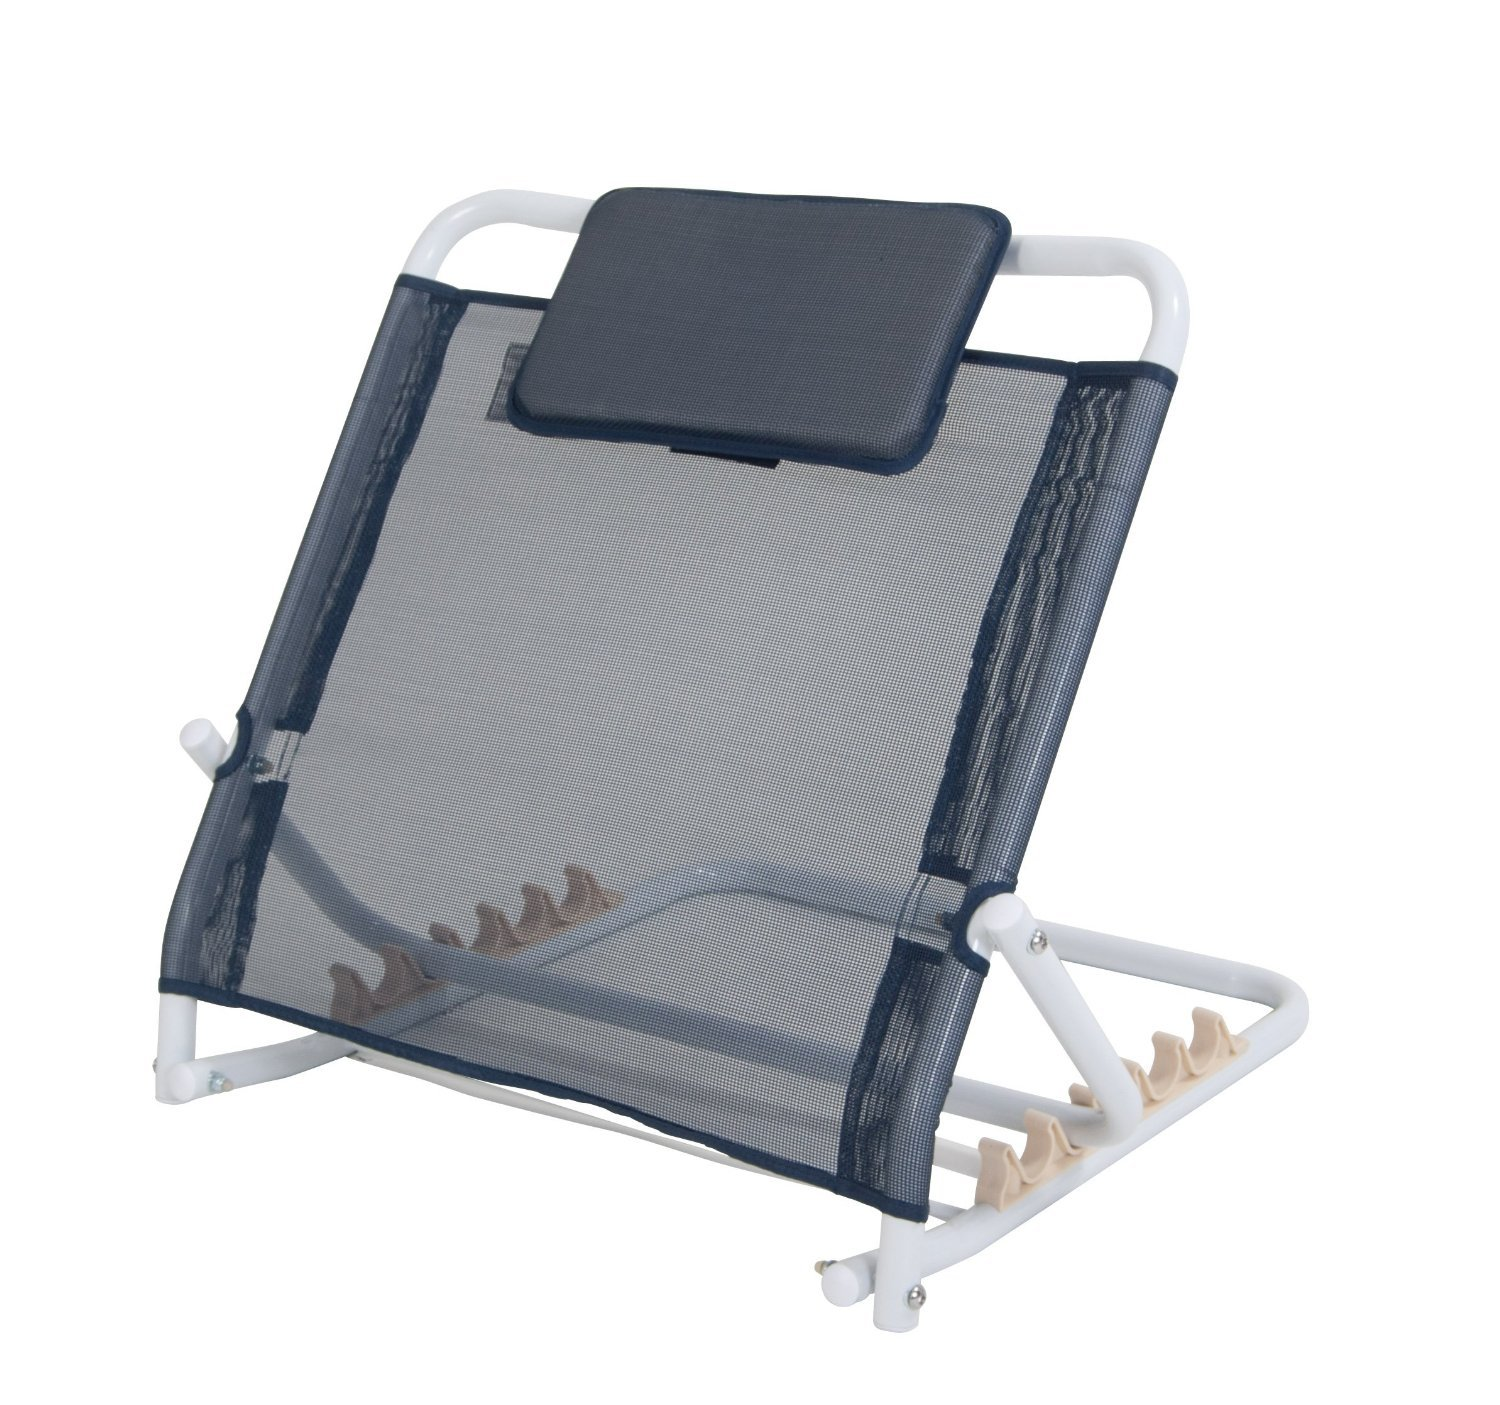 Amazon.com Diastar Adjustable Backrest Reclining Support Bed Wedge with Pillow Cushion Health u0026 Personal Care  sc 1 st  Amazon.com & Amazon.com: Diastar Adjustable Backrest Reclining Support Bed ... islam-shia.org